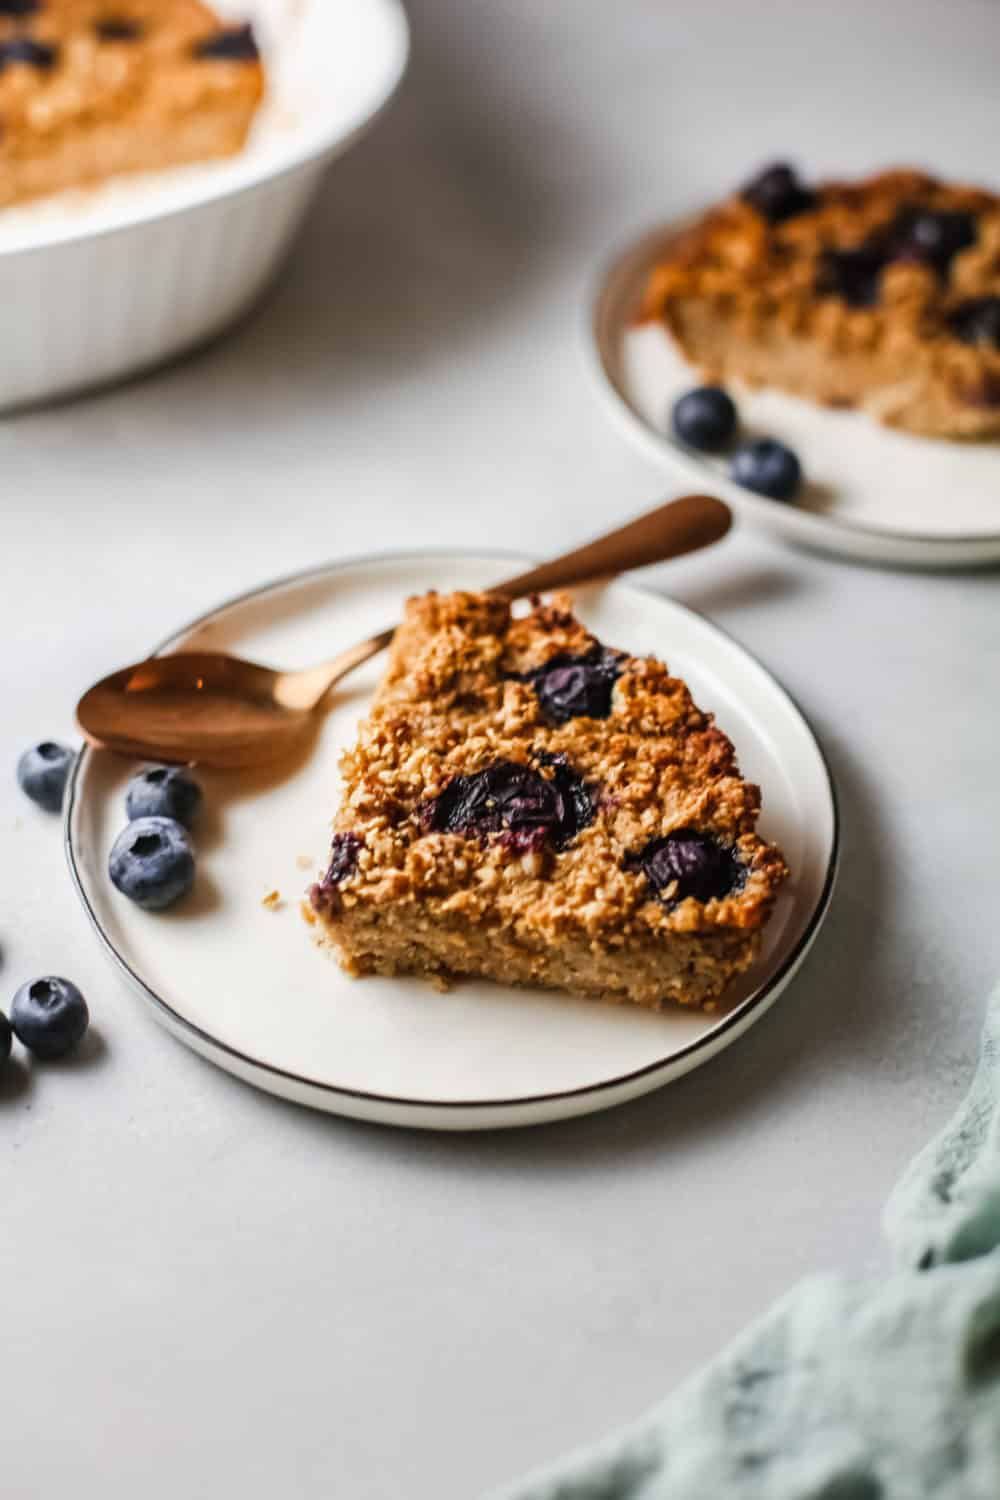 oven baked oatmeal with blueberries on top